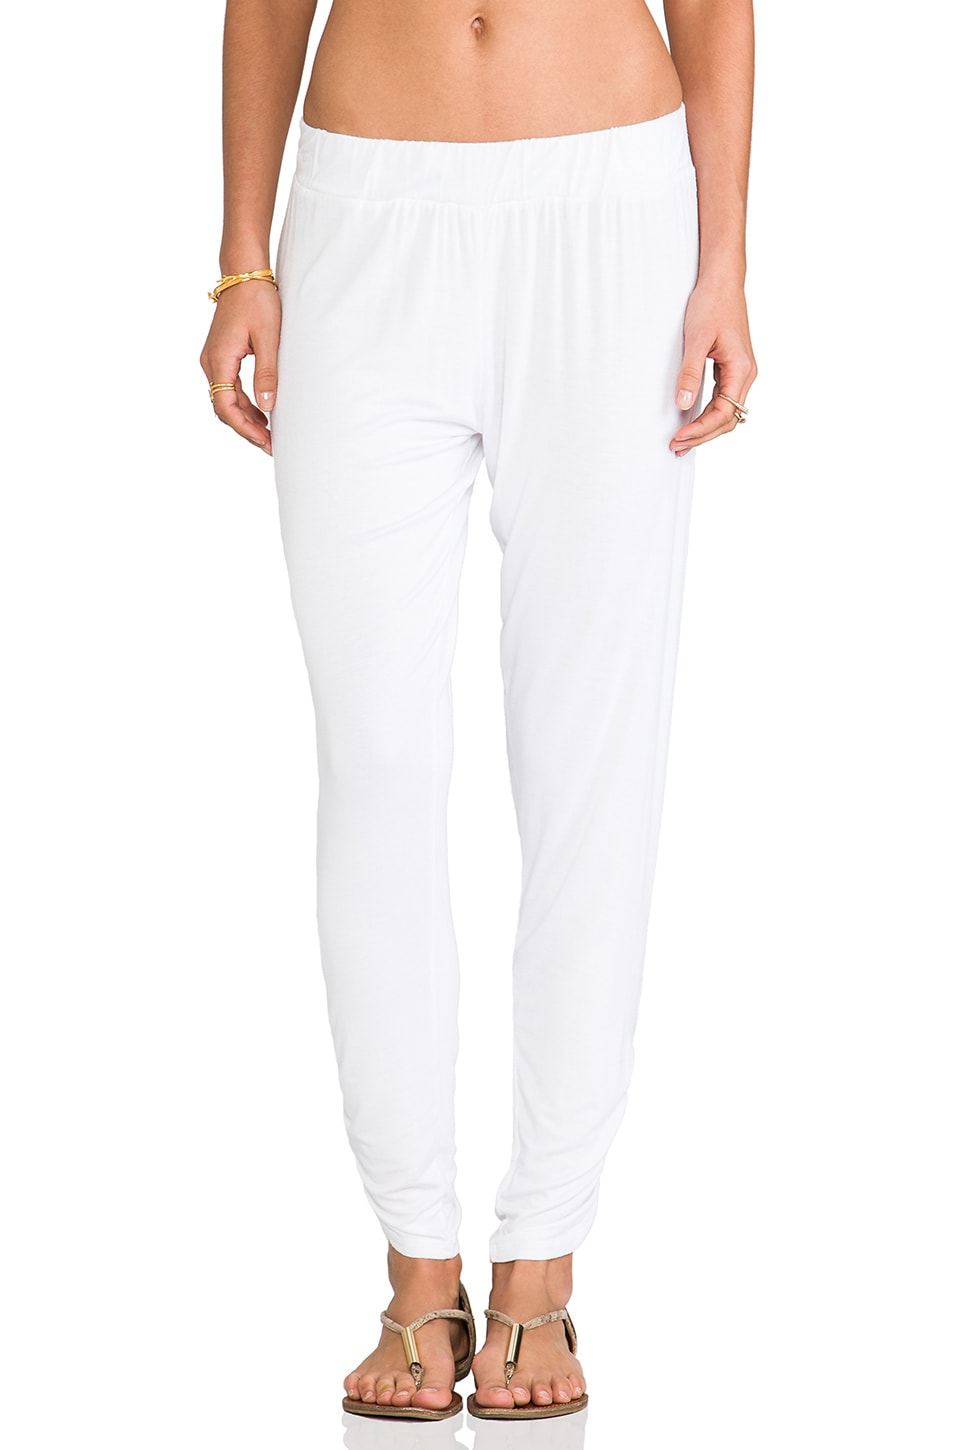 Michael Lauren Pablo Pant in White